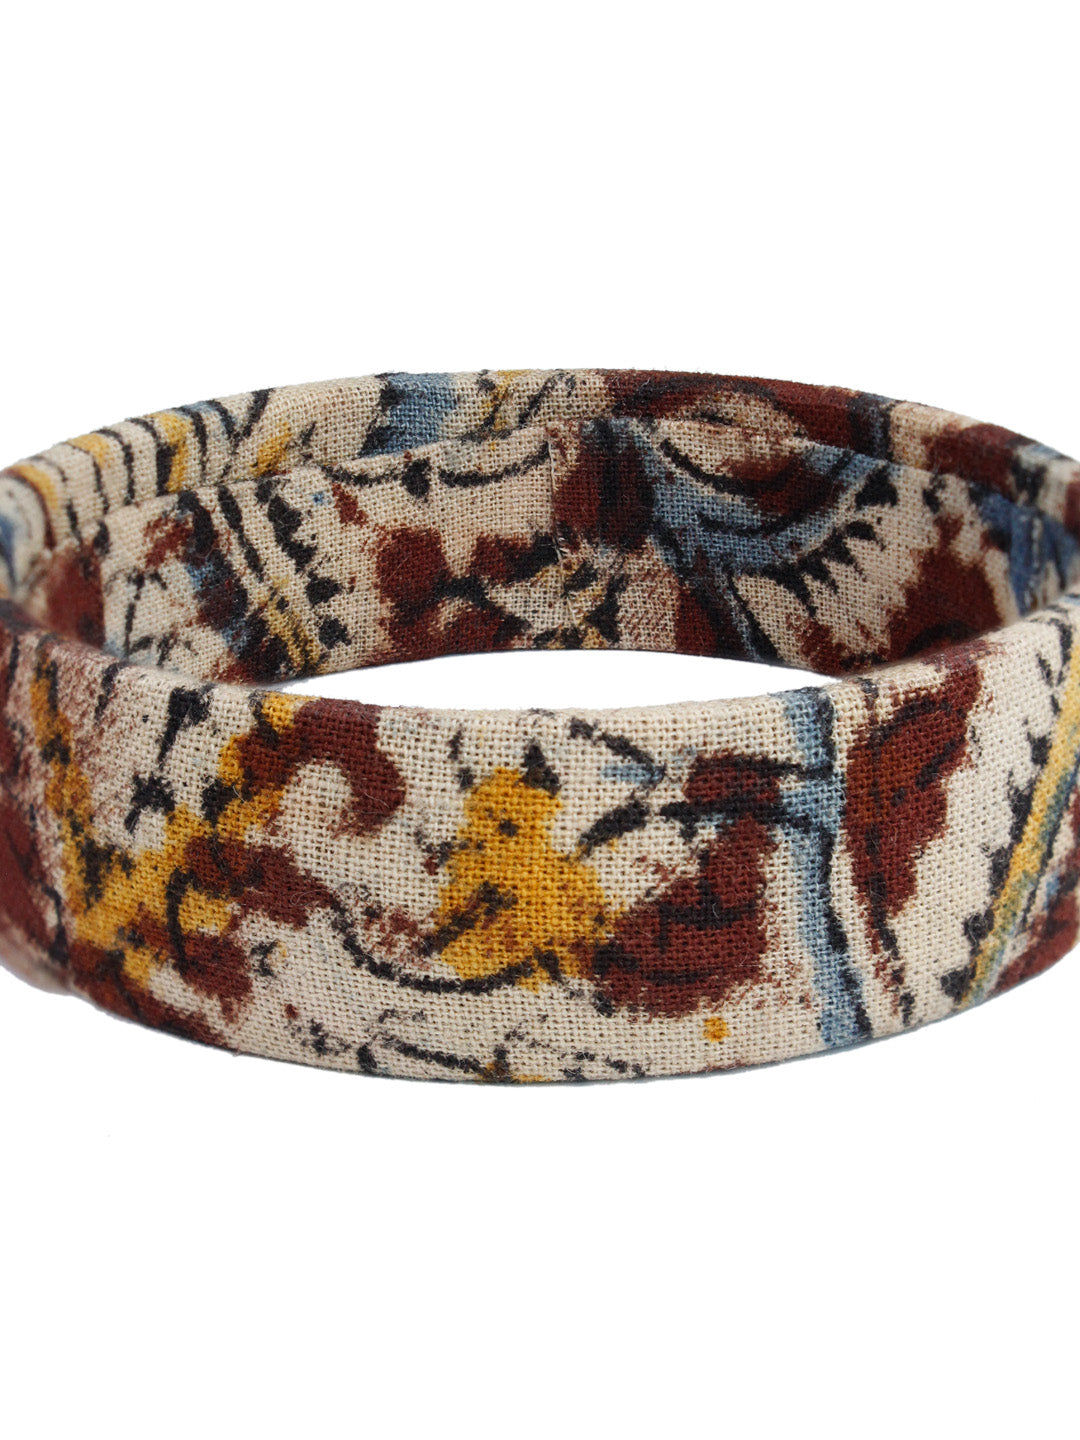 Kalamkari Fabric Printed Handmade Bangle-AVISMAYA1-Bangle